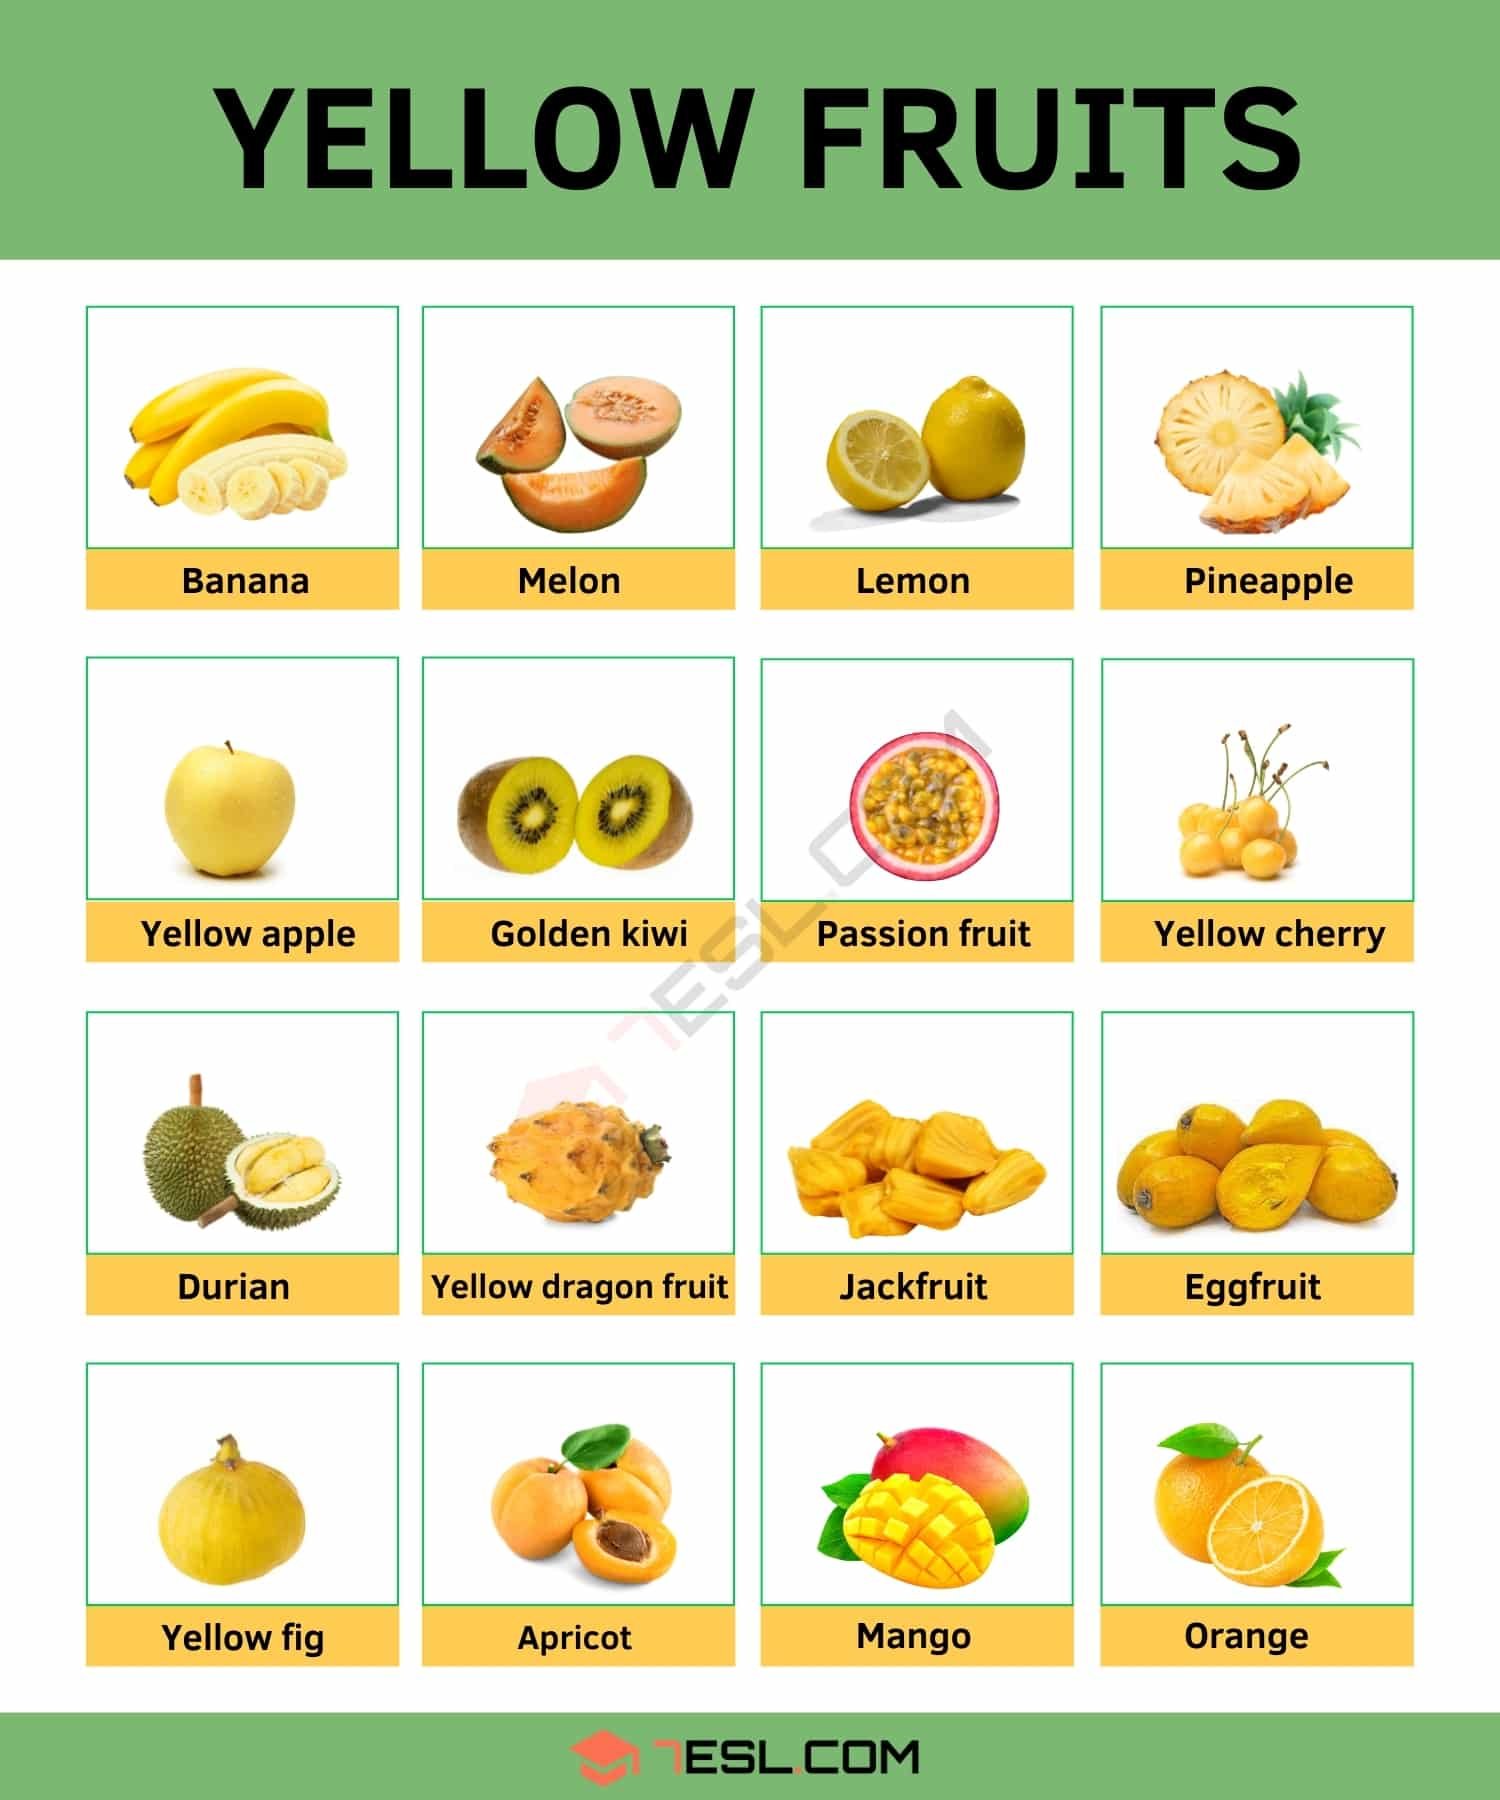 Yellow Fruits | List of Yellow Fruits with Amazing Health Benefits